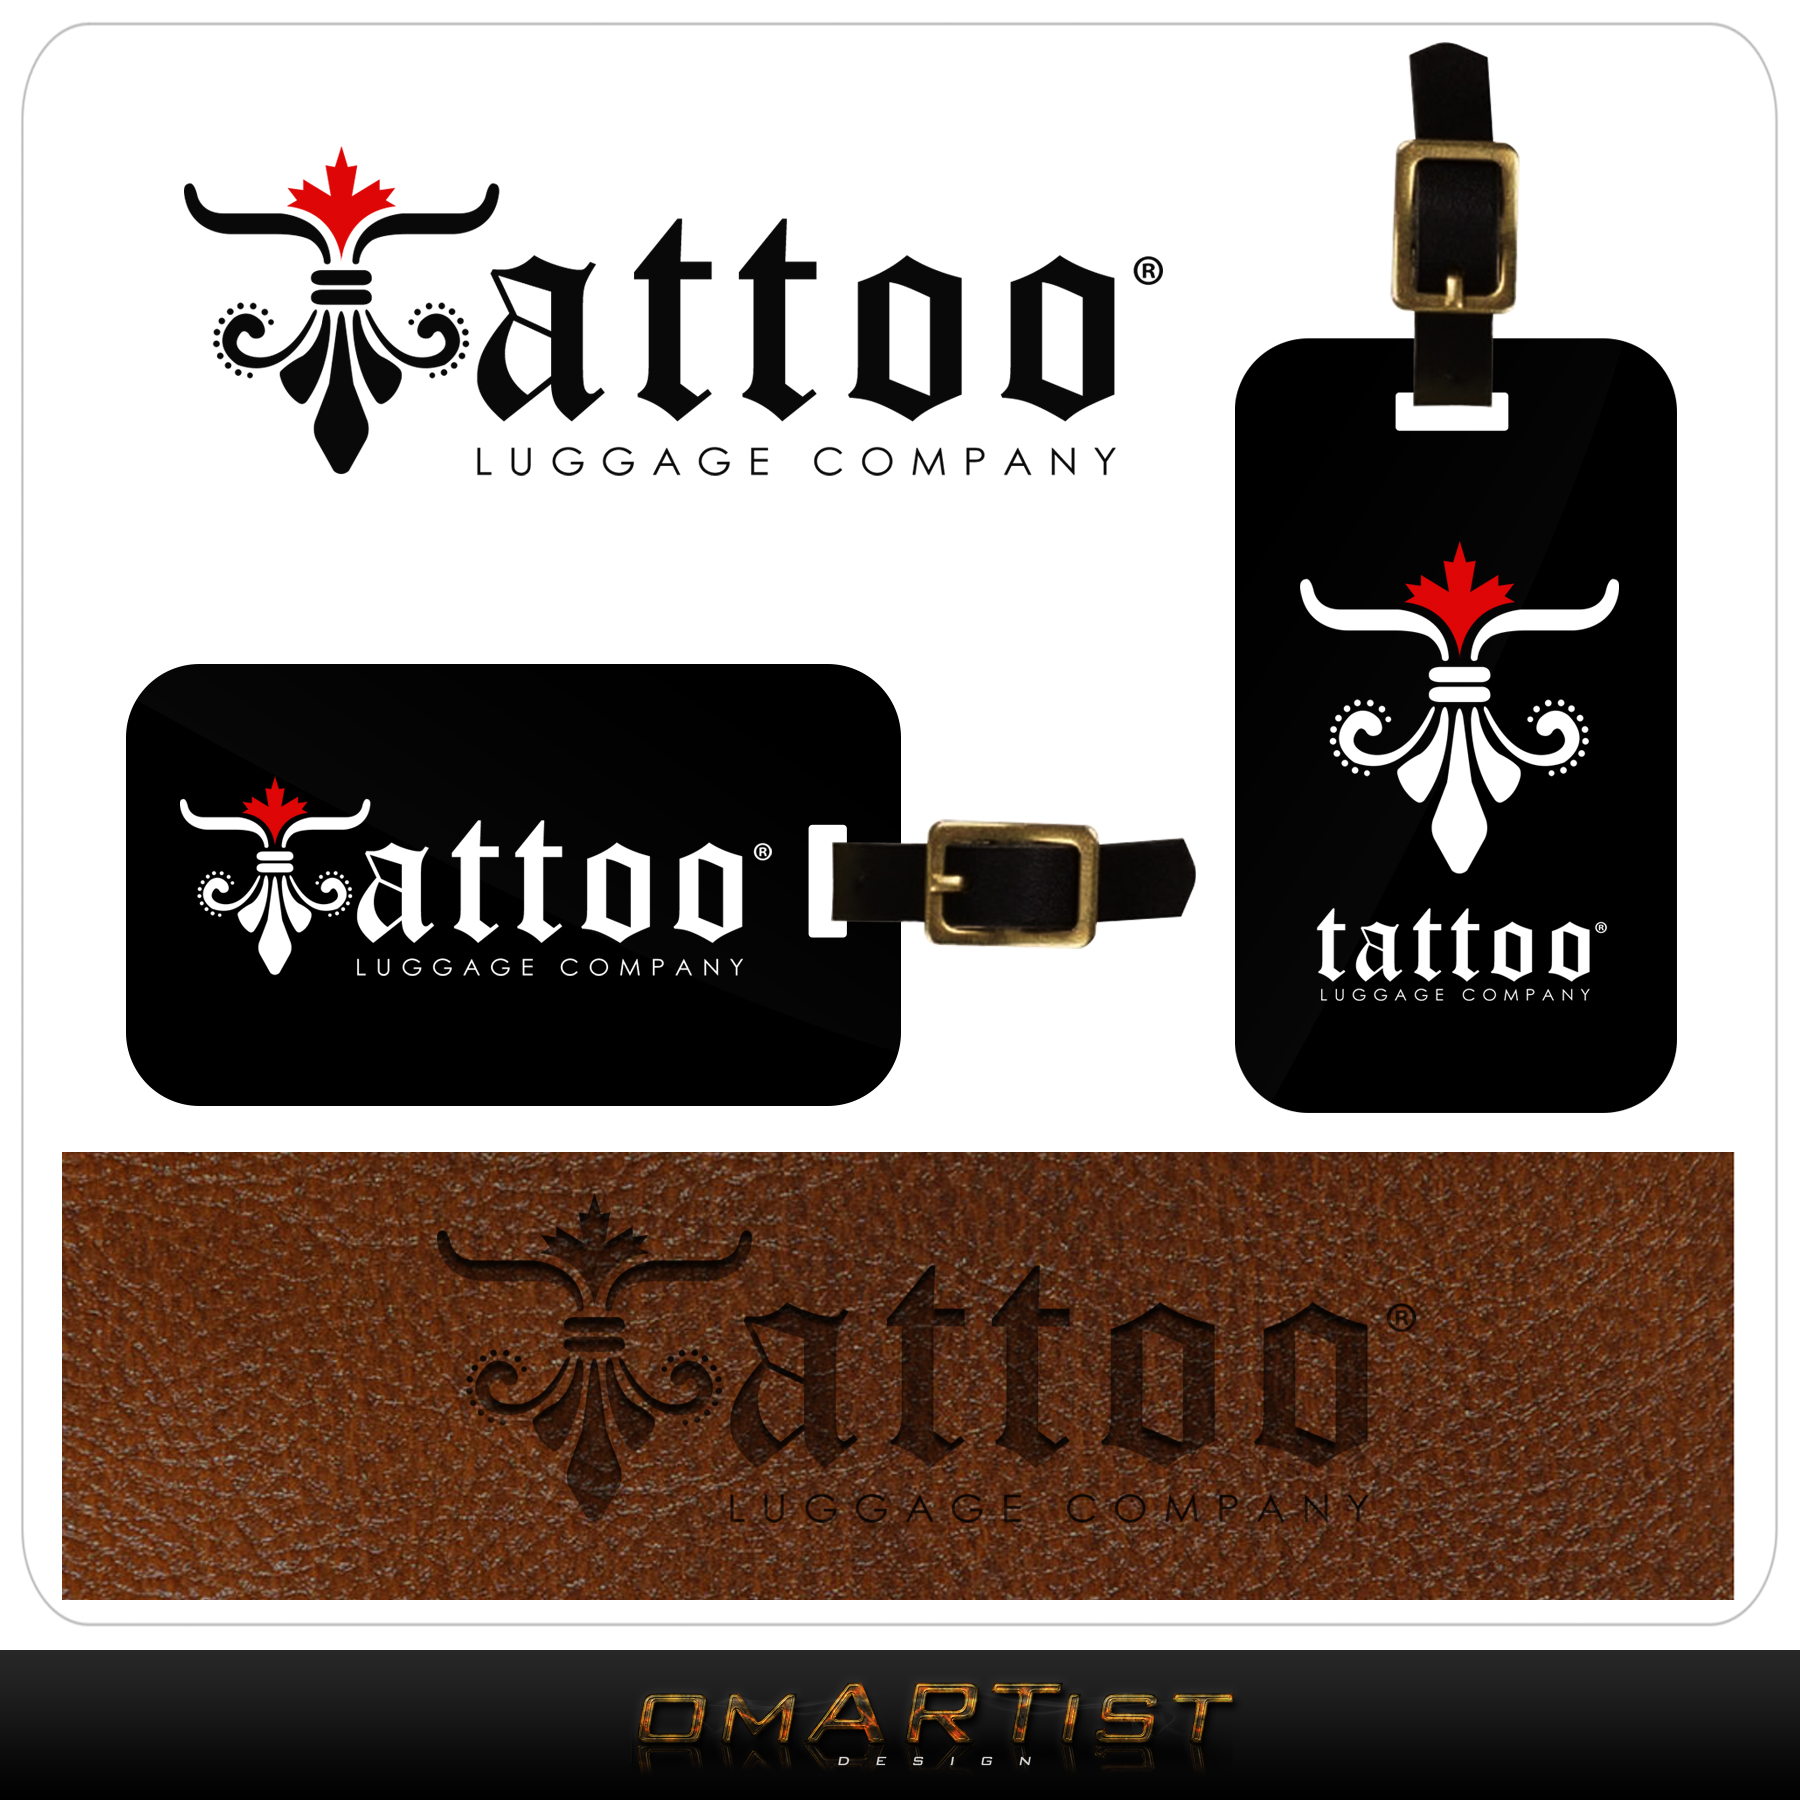 Logo Design by omARTist - Entry No. 141 in the Logo Design Contest Artistic Logo Design for Tattoo Luggage Company.